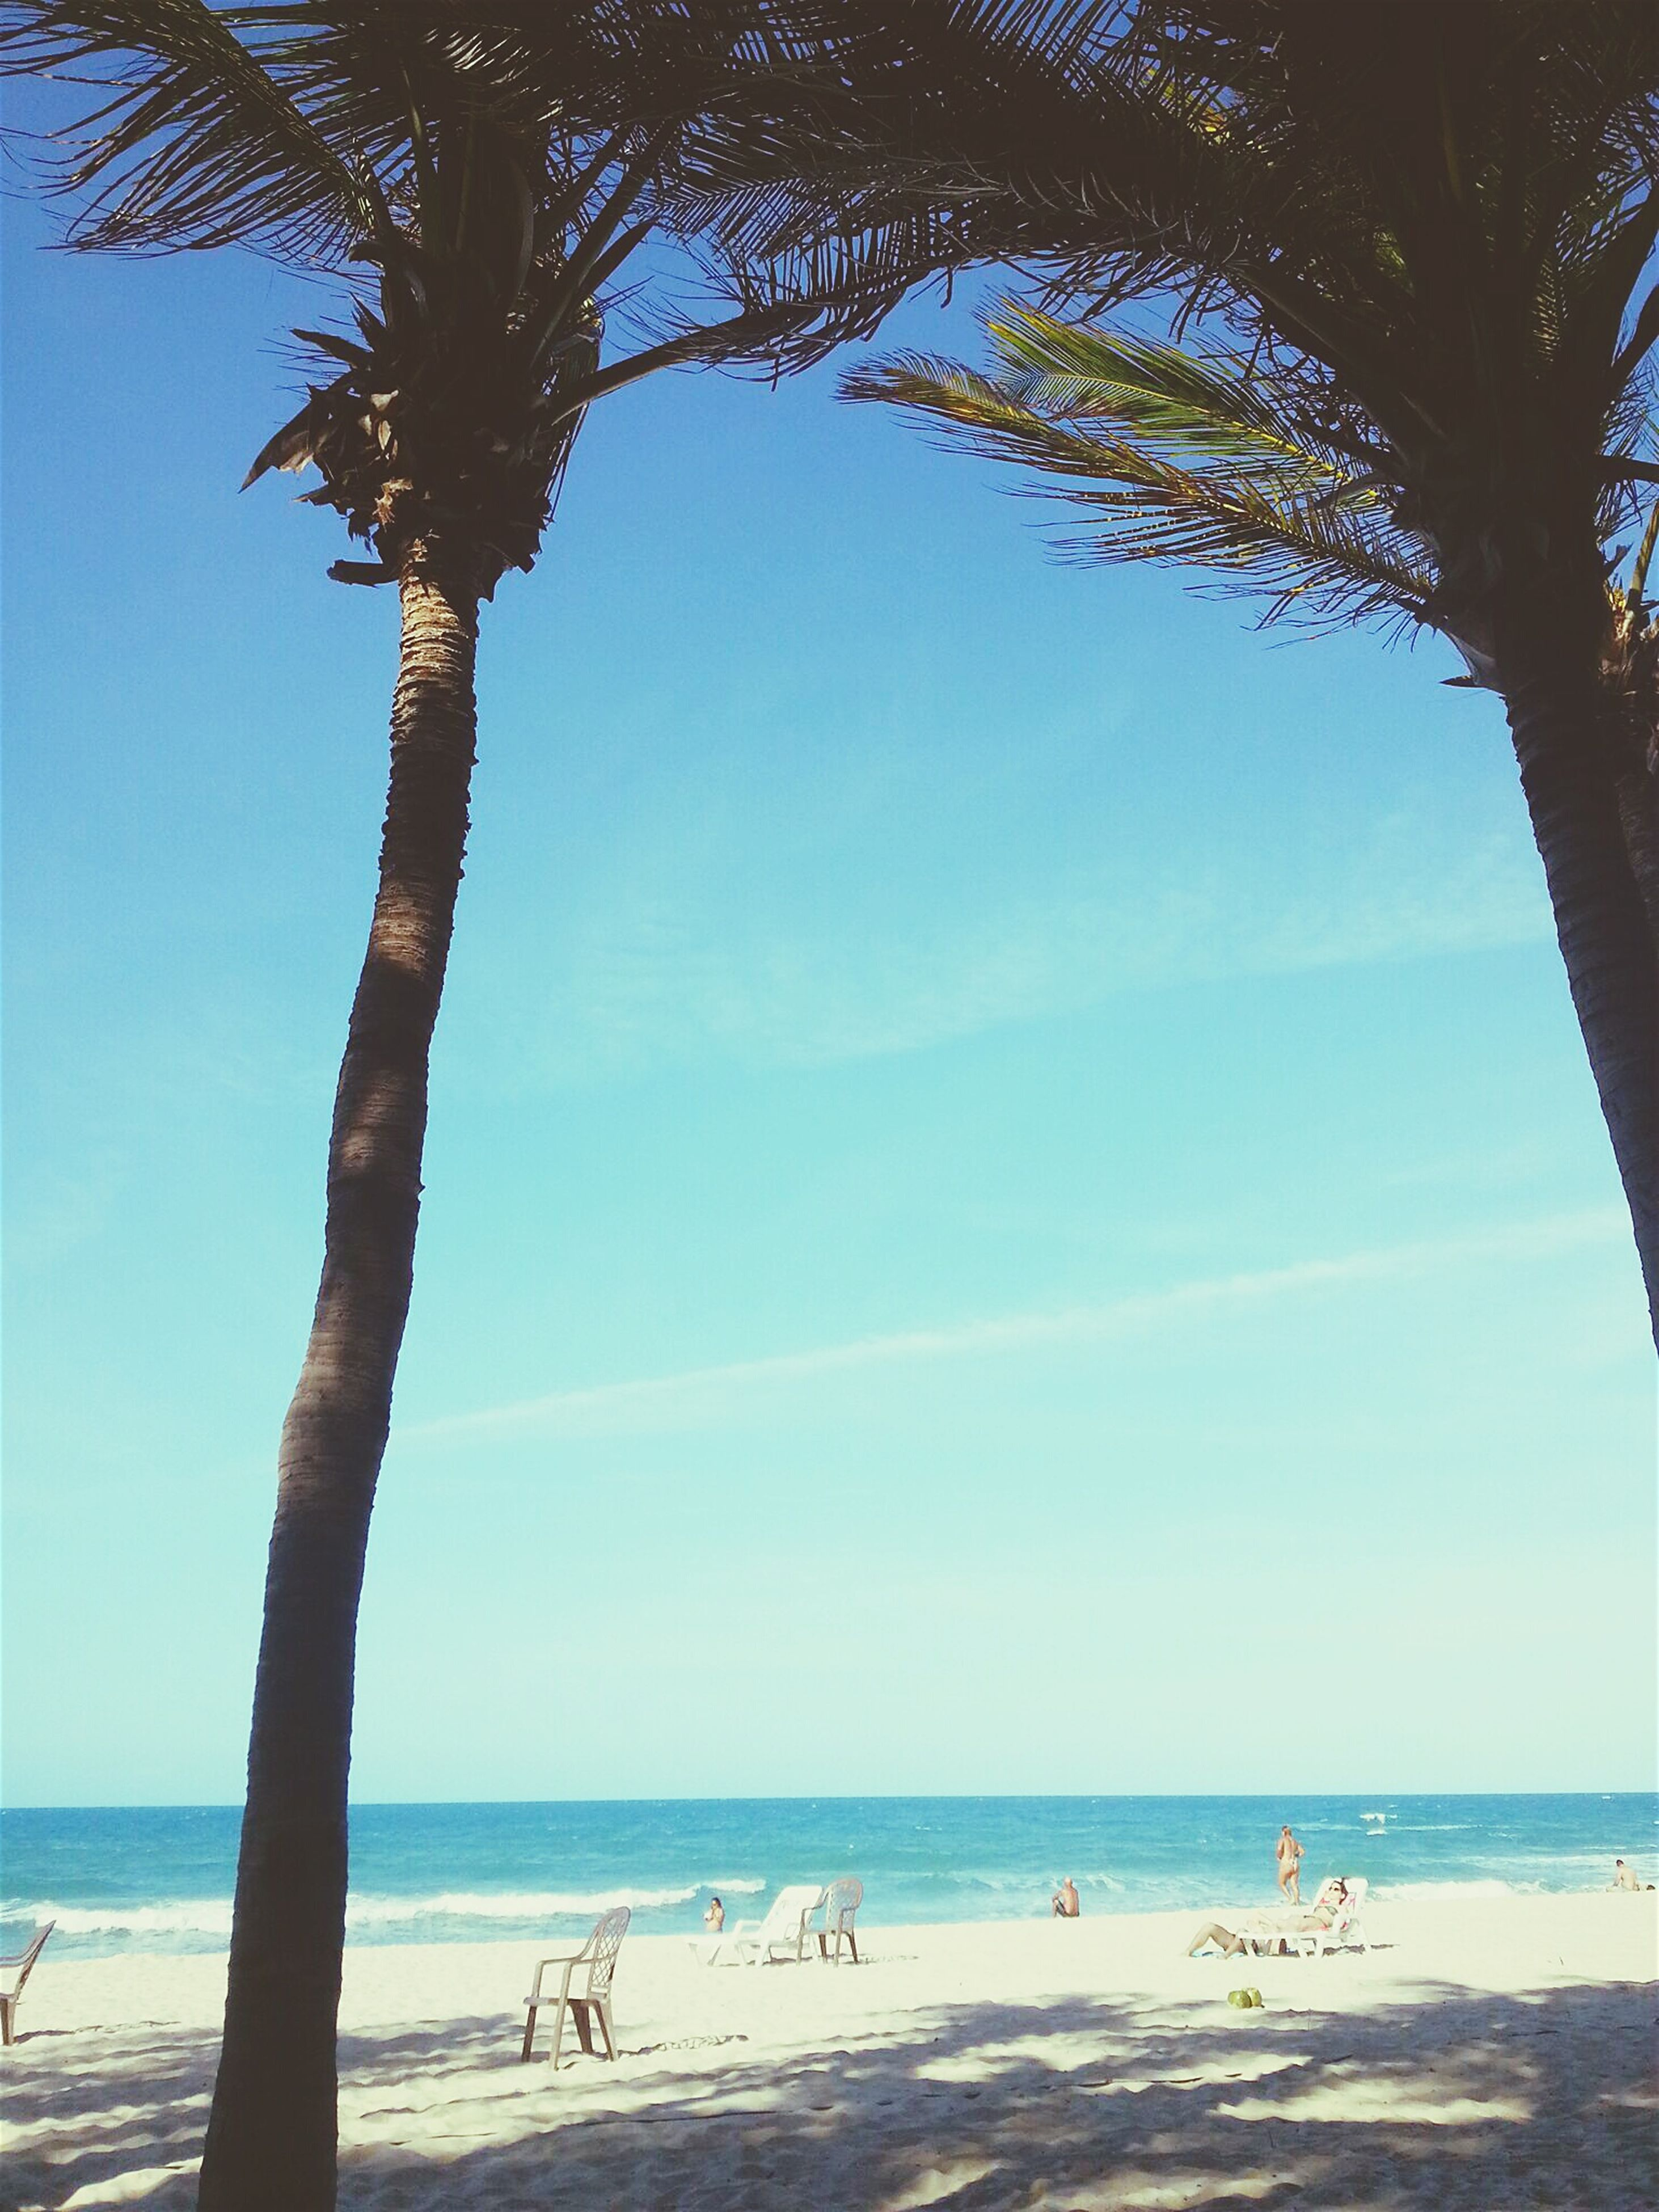 sea, beach, horizon over water, water, shore, tree, scenics, tranquility, sand, sky, tranquil scene, vacations, beauty in nature, palm tree, nature, incidental people, blue, leisure activity, idyllic